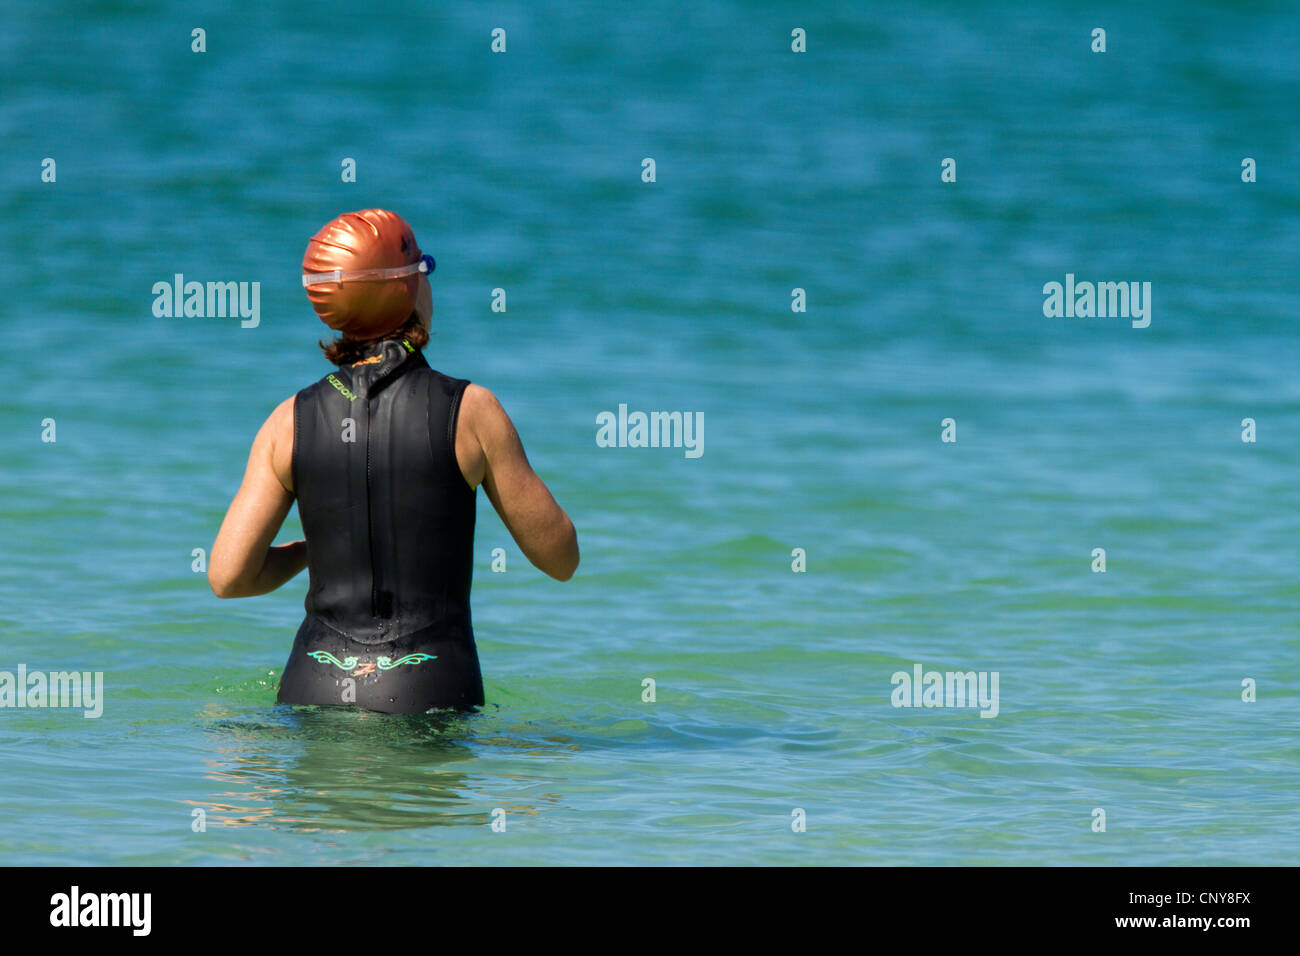 Female swimmer wearing a swimming cap and suit stands in the blue water of a  Atlantic Ocean - Gulf of Mexico - Stock Image